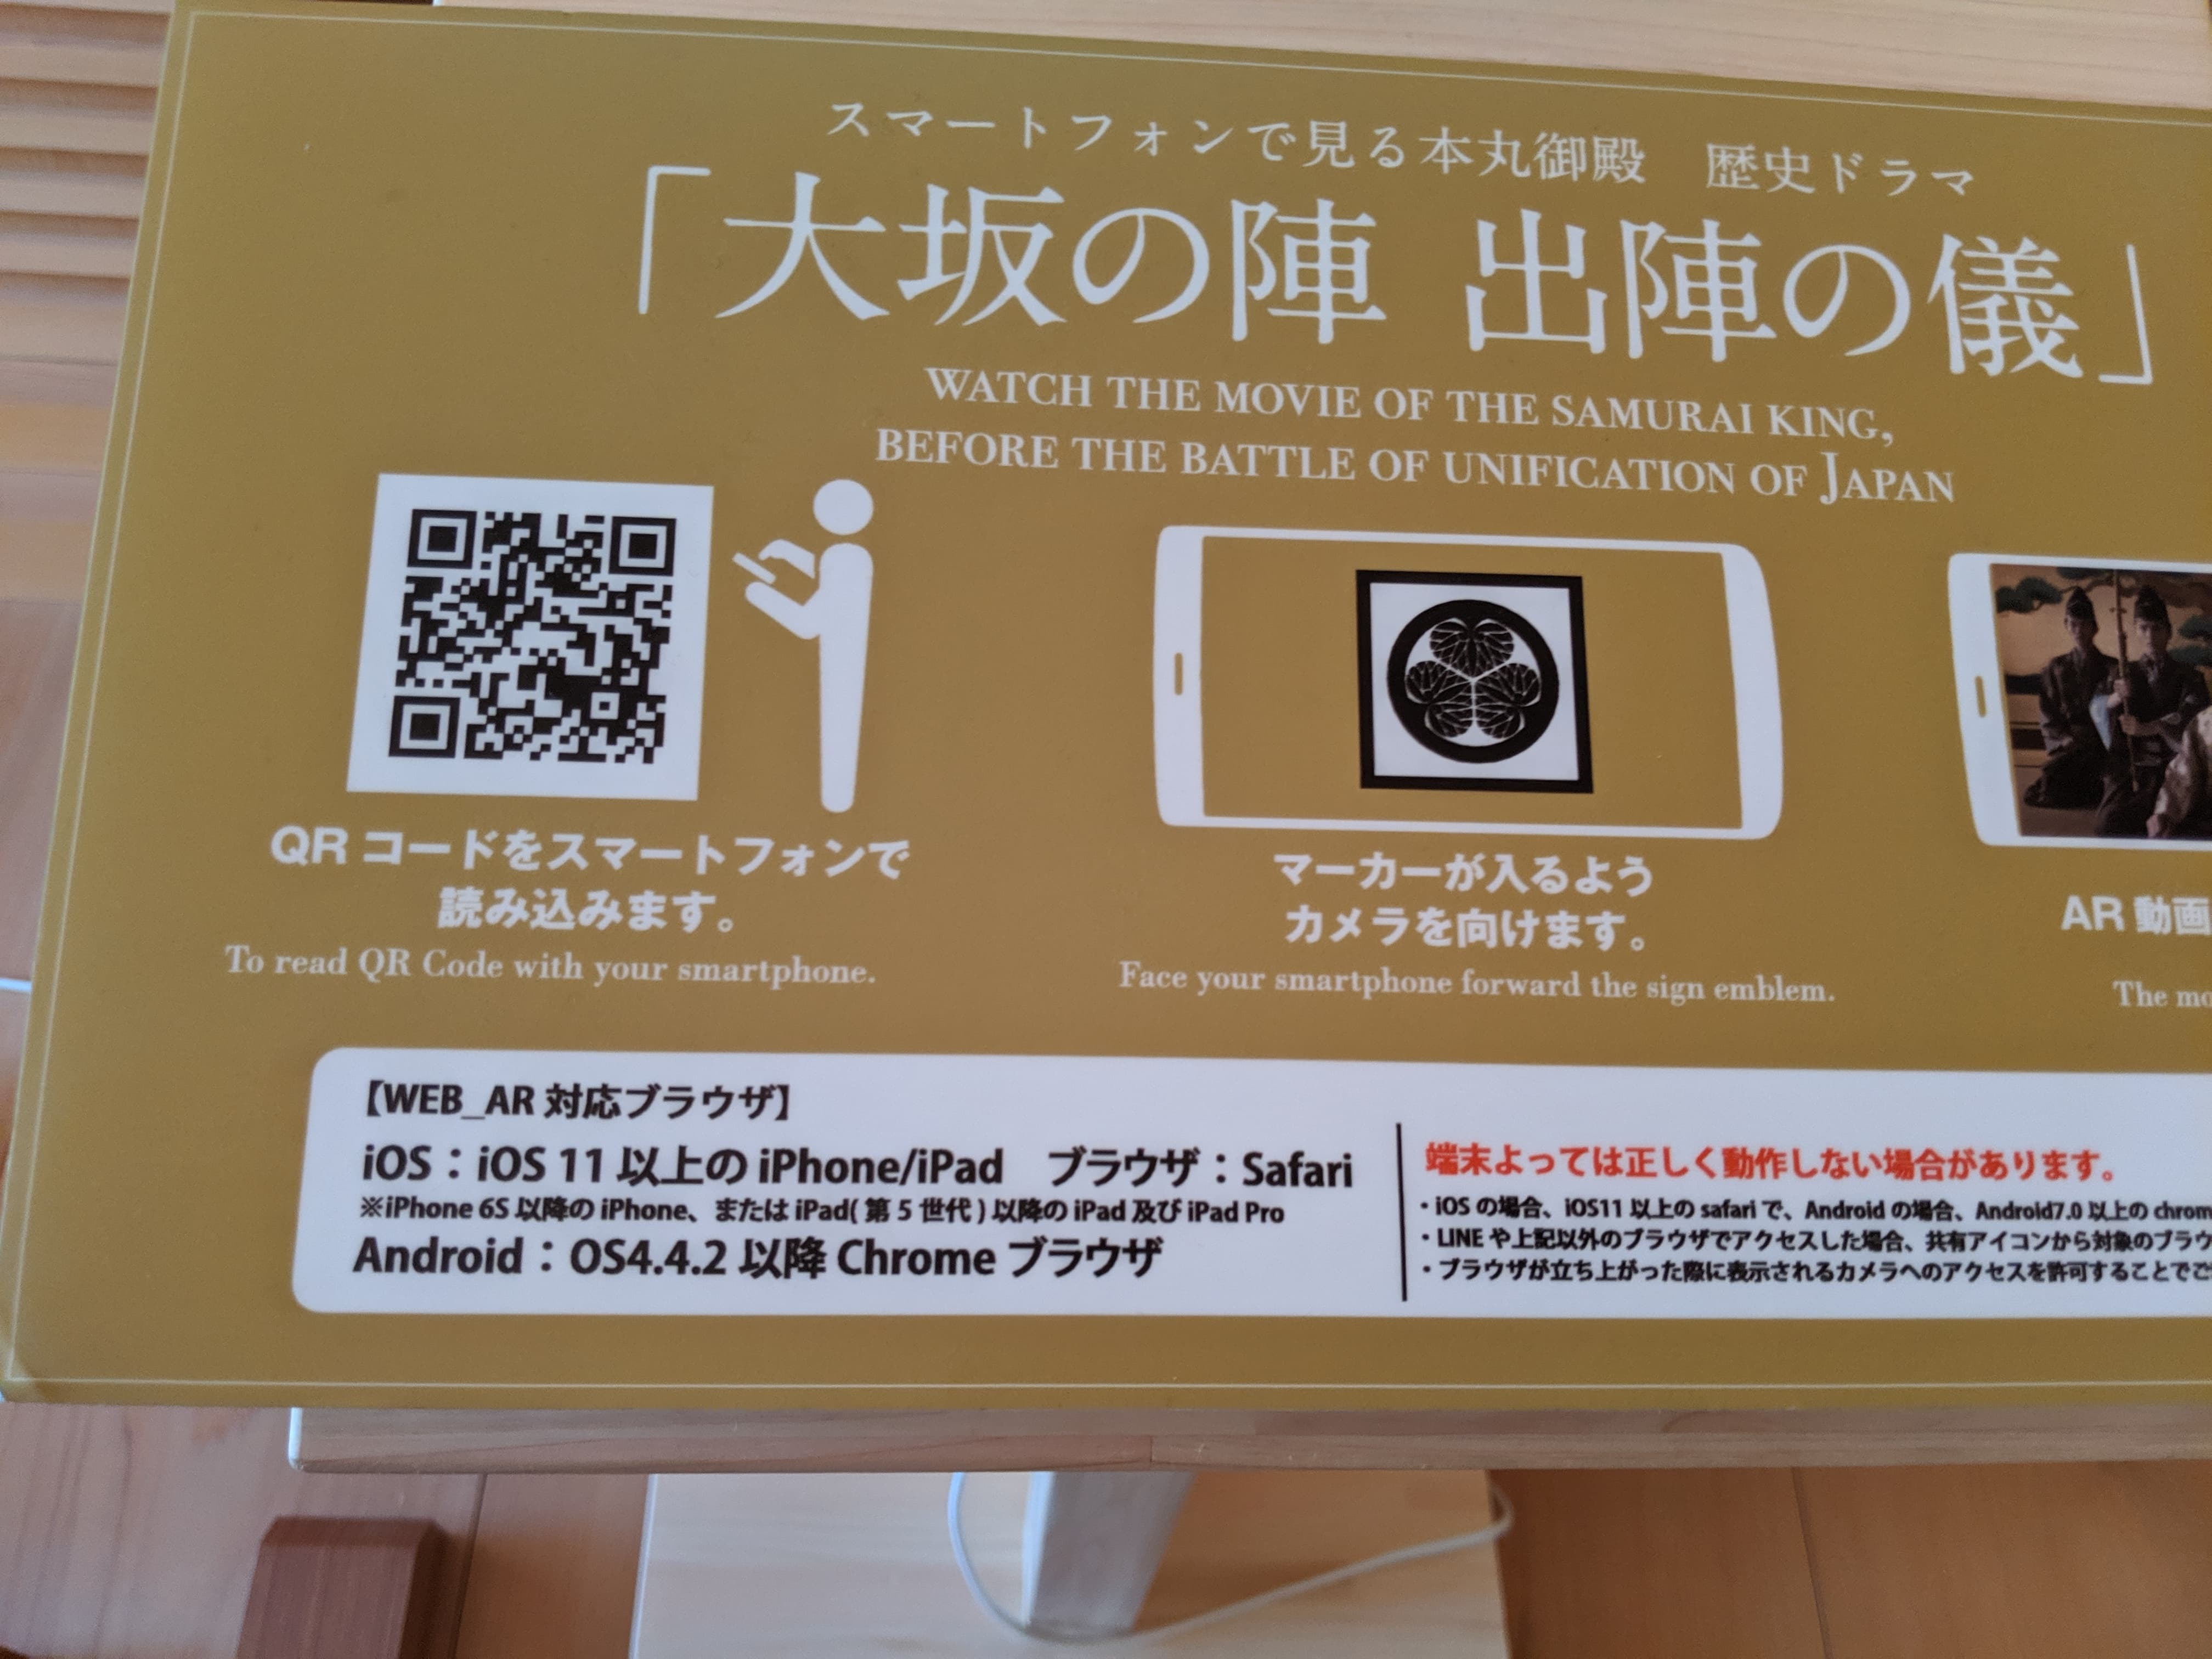 Meatspace Augmented Reality: From Chester to Nagoya - DZone IoT